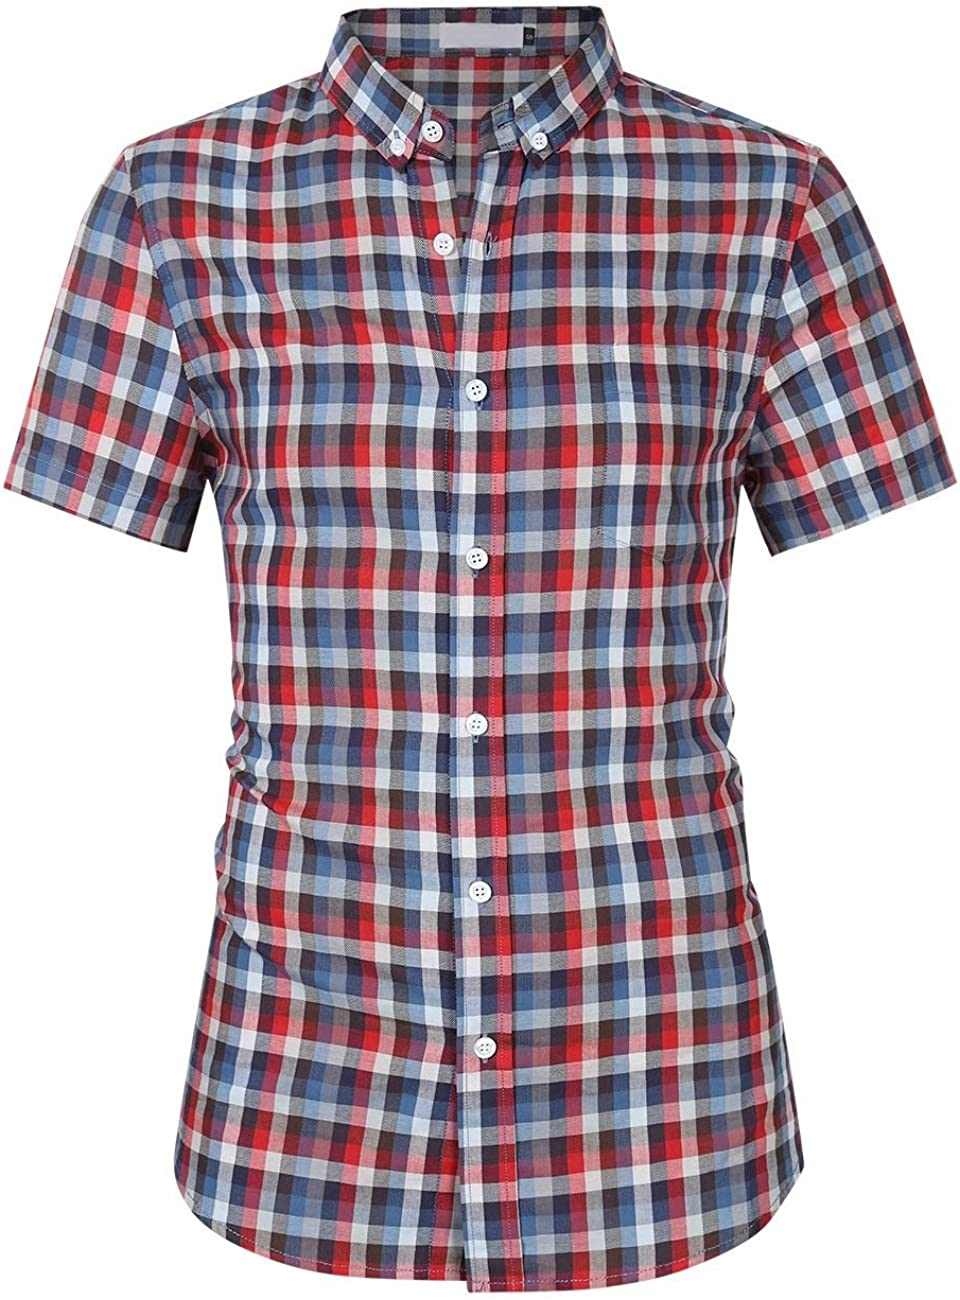 Fieer Mens Cotton Oversize Short Sleeve Turn-Down Collar Casual Dress Shirts